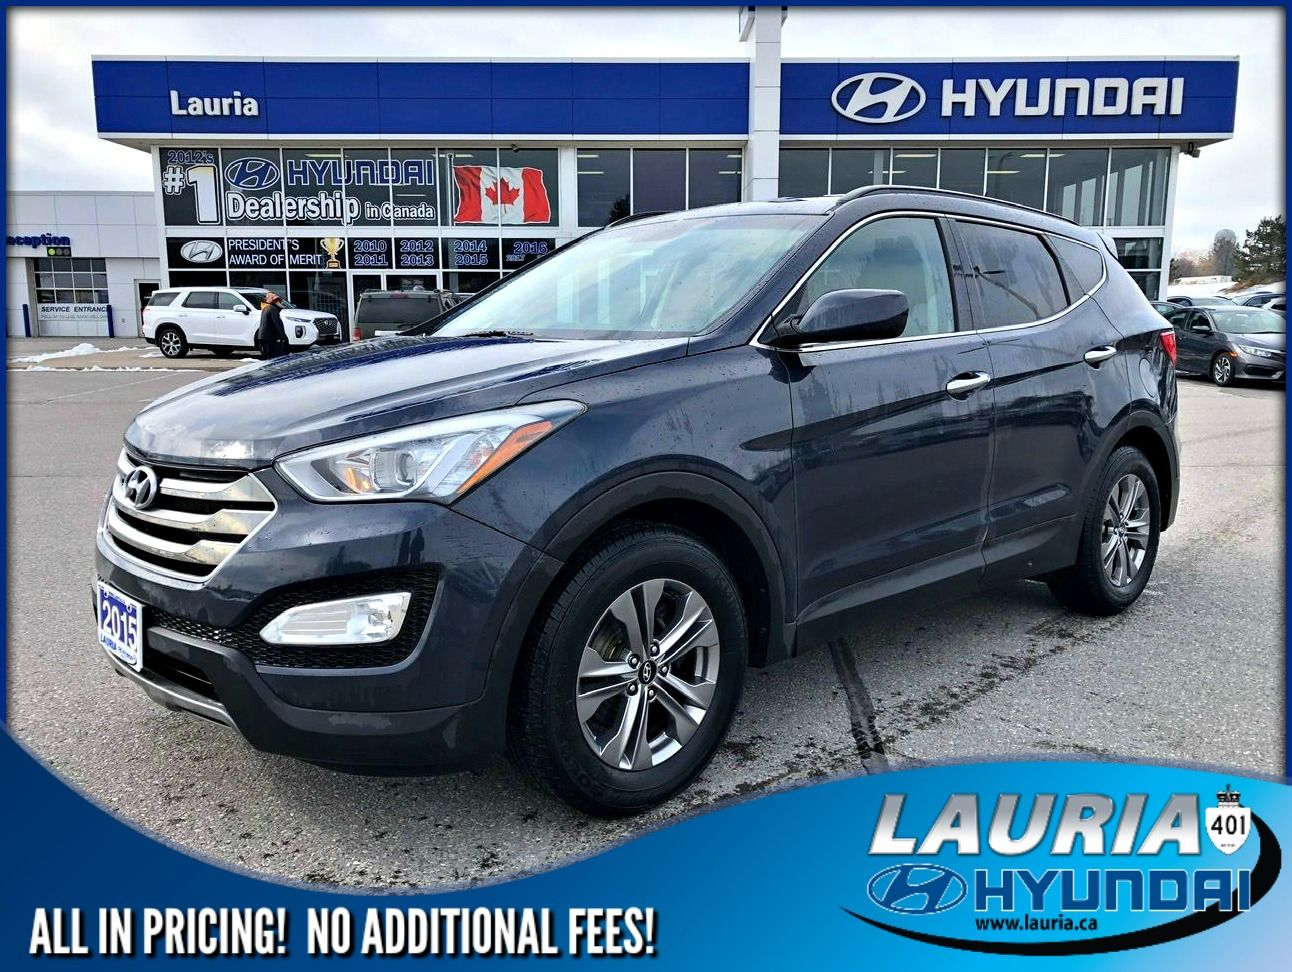 Certified Pre-Owned 2015 Hyundai Santa Fe Sport 2.4L FWD Auto - 1 owner